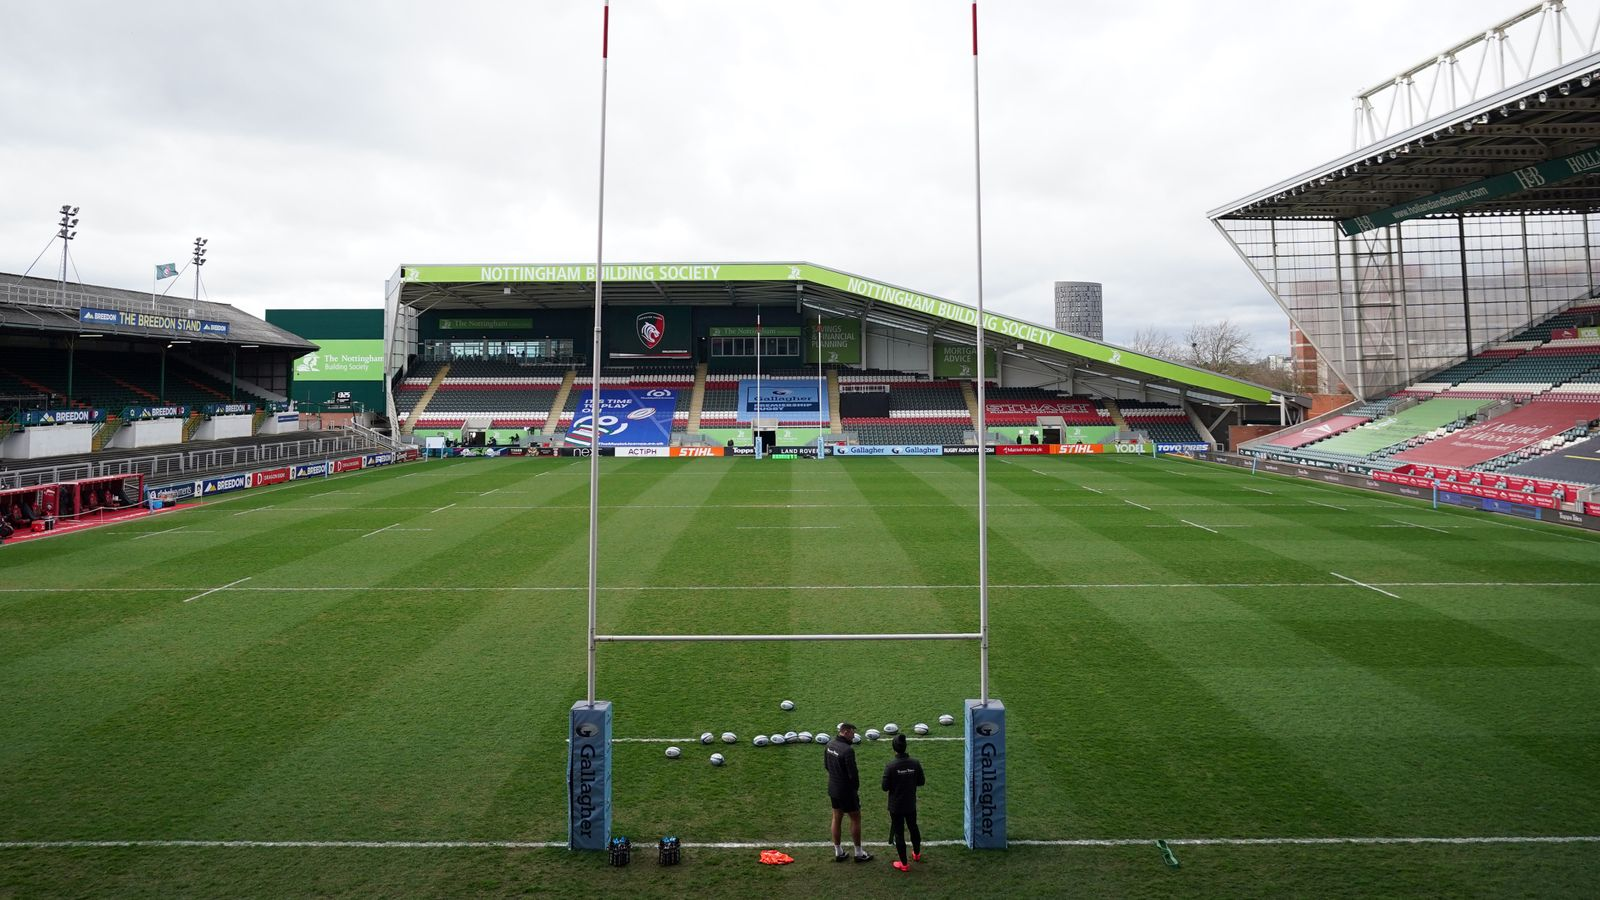 England A vs Scotland A called off due to Covid cases in the Scotland squad